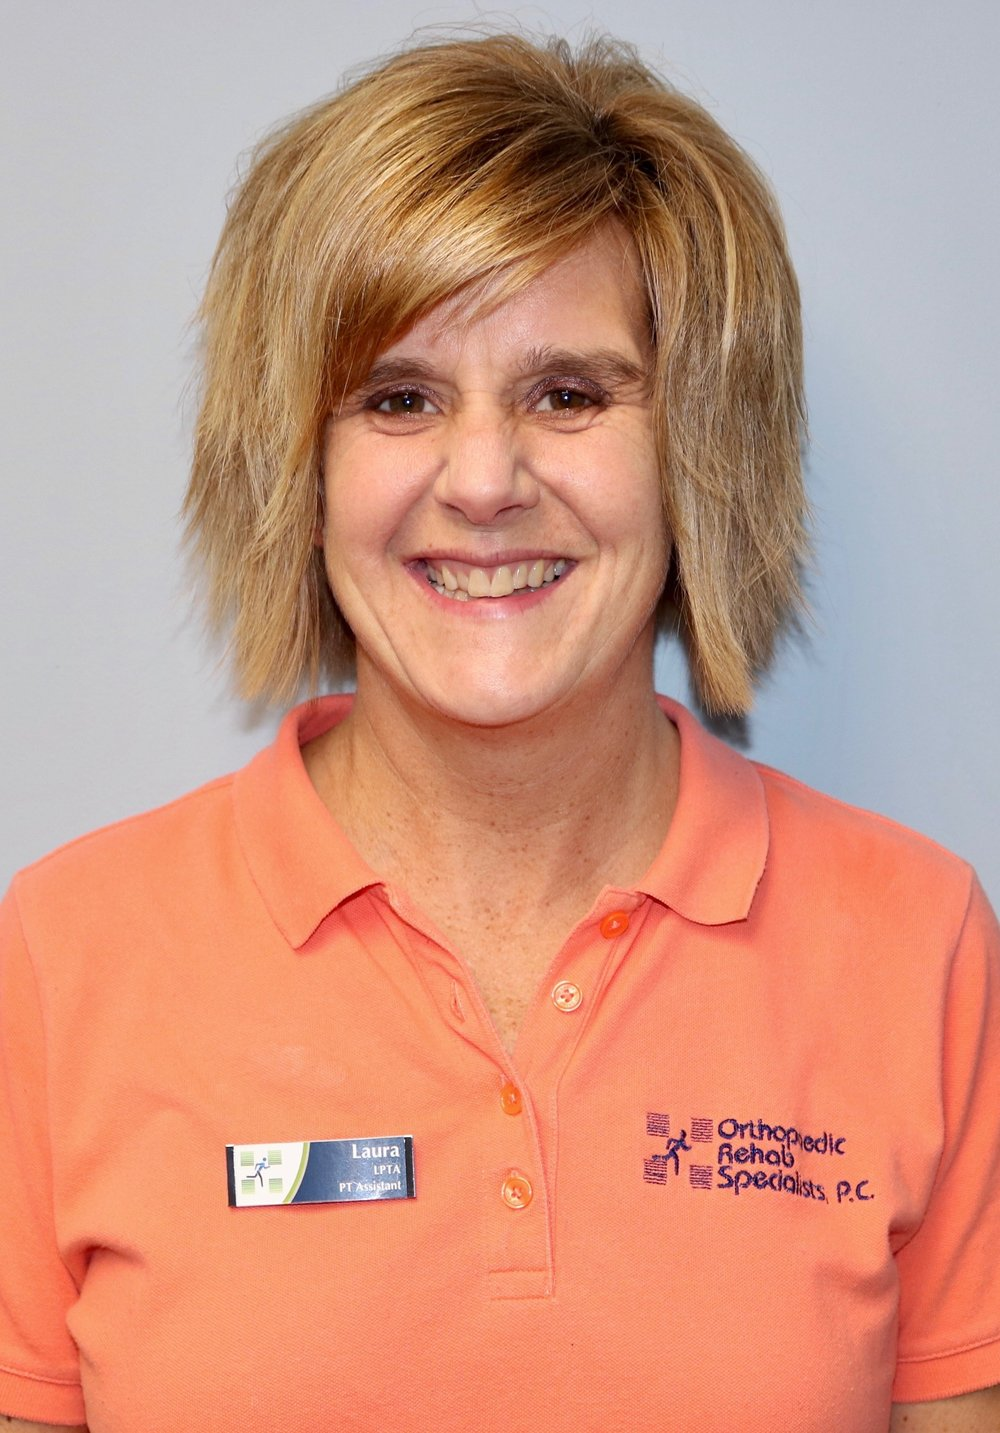 Laura Hause LPTA   Laura started at ORS in 1988 as a Therapy Aide. She received her Associate's Degree in Applied Science from Kellogg Community College in 1993. Laura has worked in various settings, including neuro rehab, home care, skilled nursing, and out-patient clinics. She enjoys working with many different diagnoses, but especially with total knee replacements, total hip replacements, and shoulder injuries and is trained in the Graston Technique®. When not working, Laura enjoys spending time with her husband and two daughters, who are very active in sports. She also enjoys outdoor activities, running, and swimming.